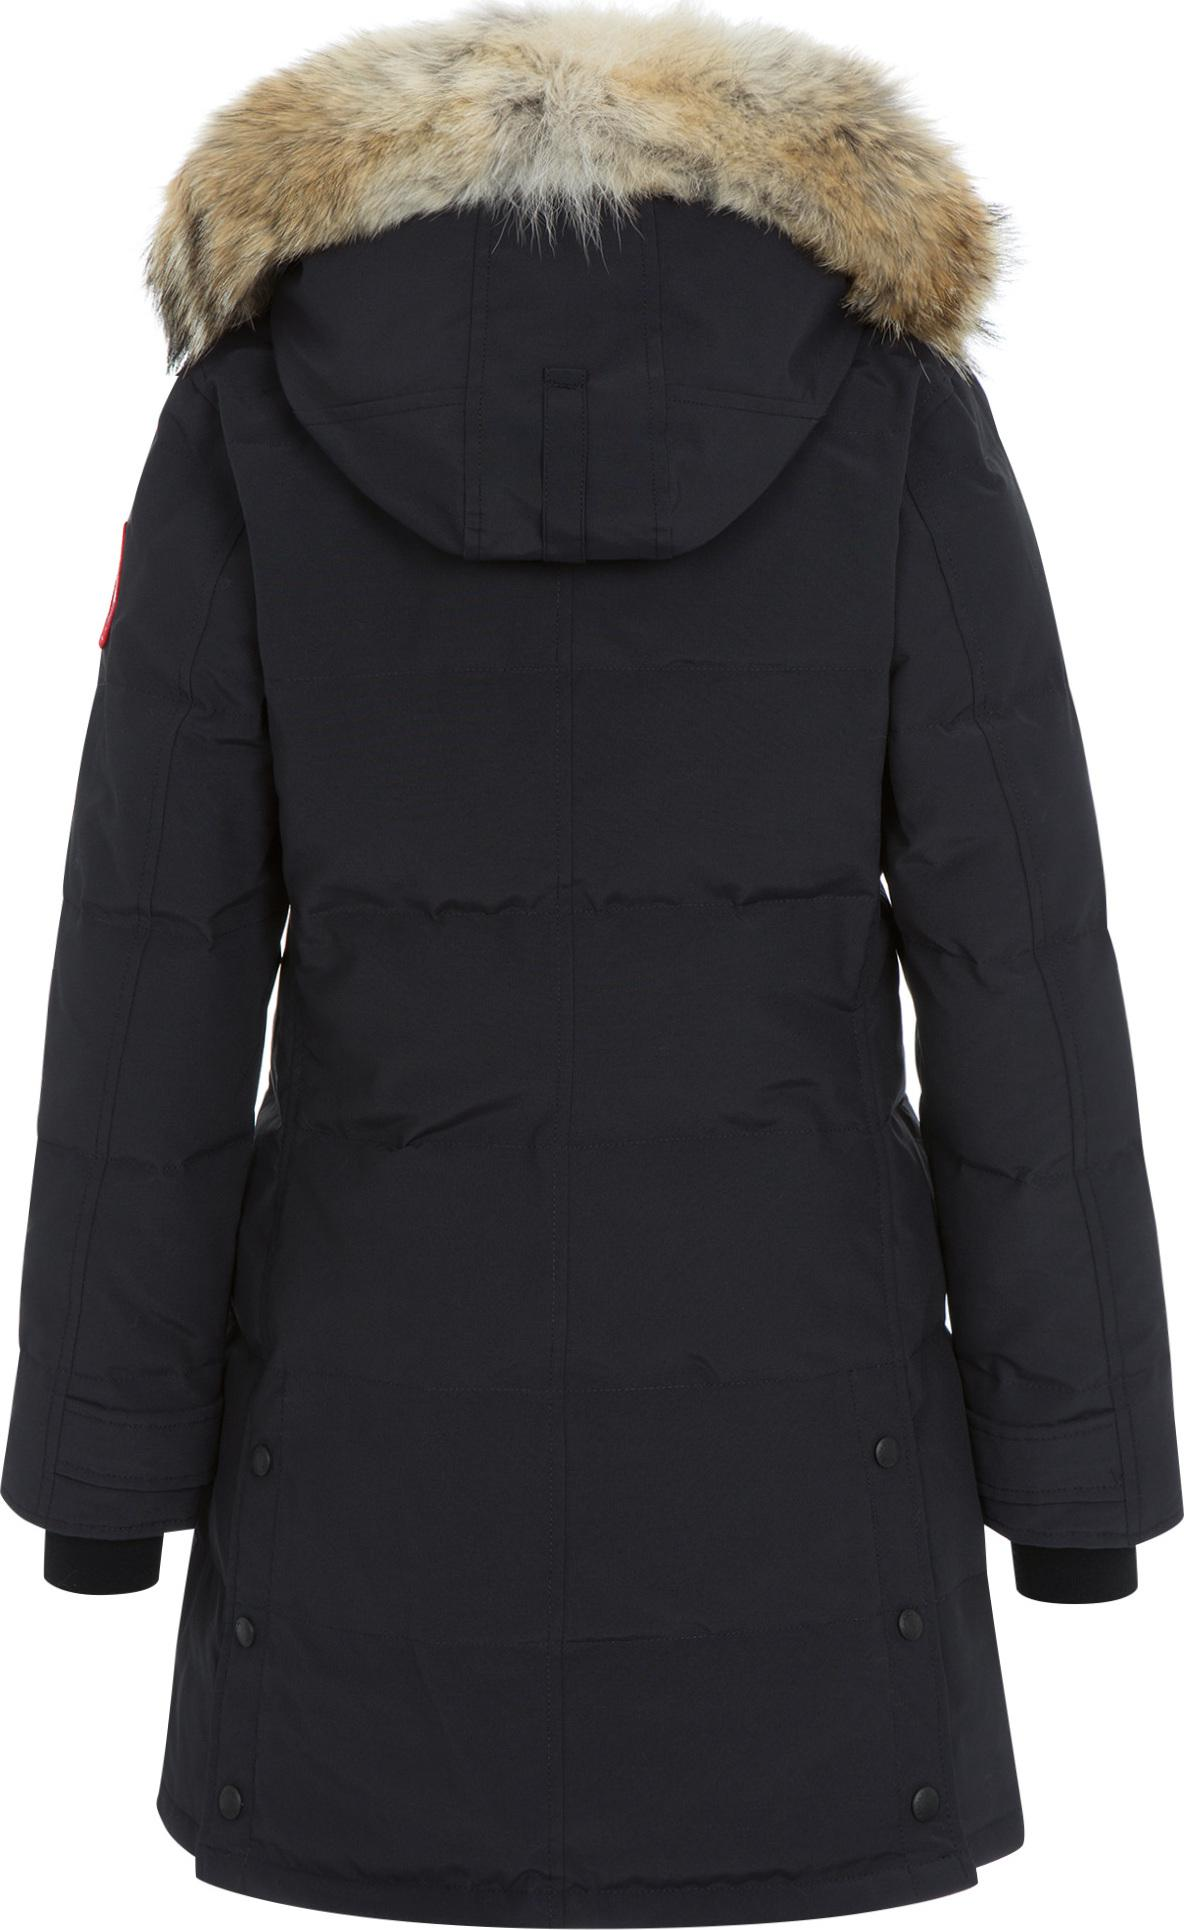 Gallery. Previously sold at: LOIT · Women's Canada Goose Shelburne